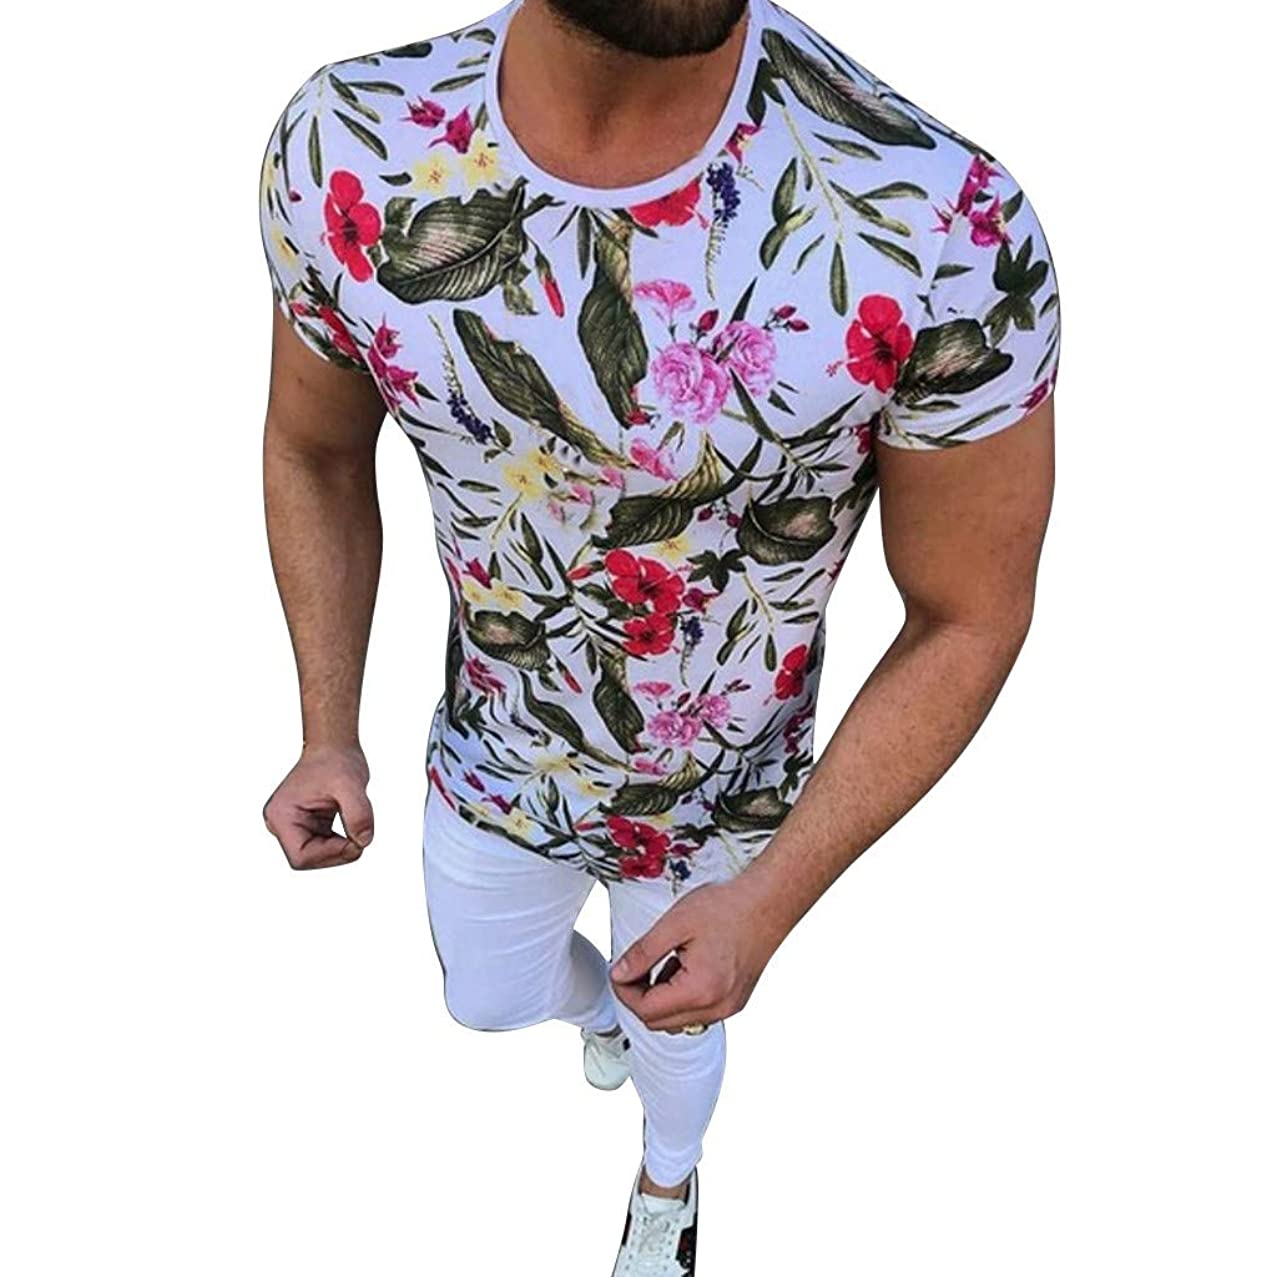 Men's Summer New Printed Short Sleeves Fashionable and Comfortable Blouse Top